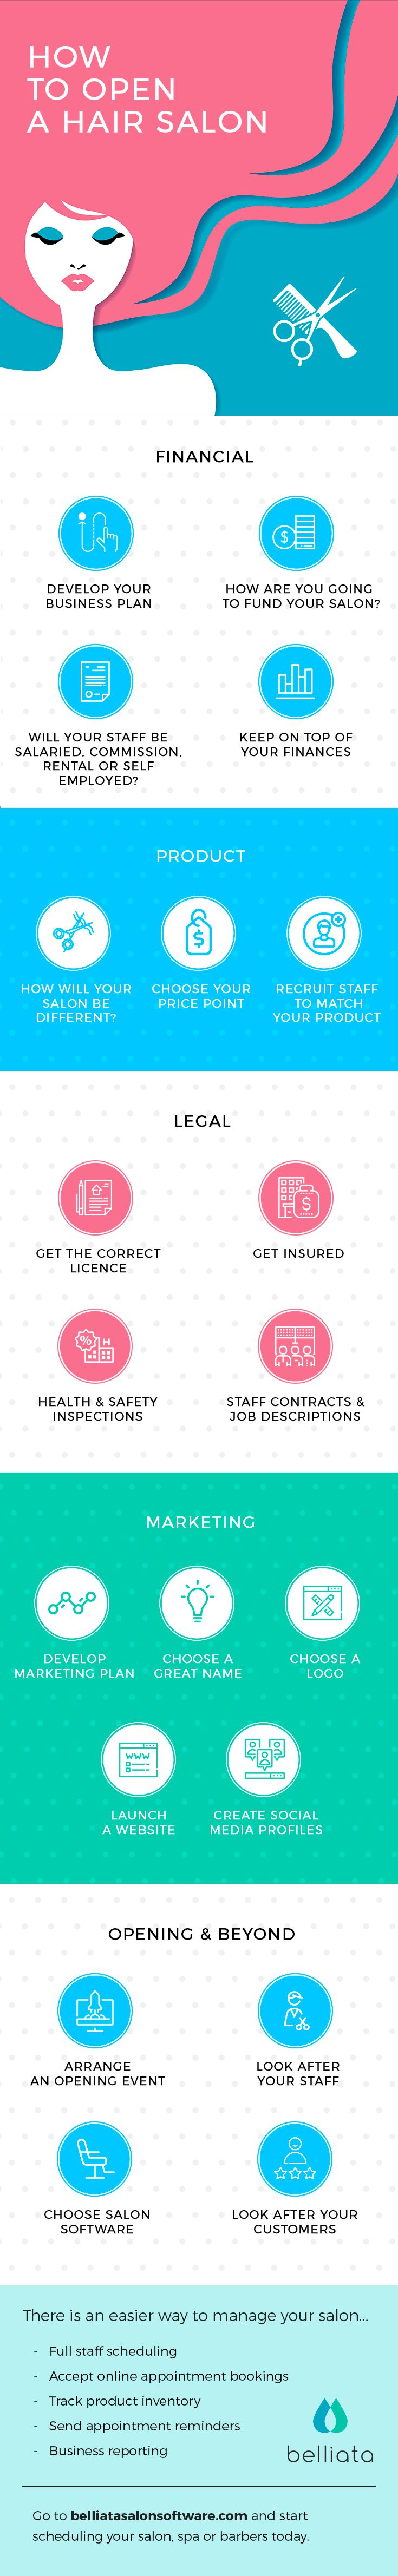 @getbelliata have put together this great infographic to guide you if your looking at opening your own hair salon. It coves every aspect of salon ownership, such as legal, finance, marketing and product. https://belliatasalonsoftware.com/open-hair-salon